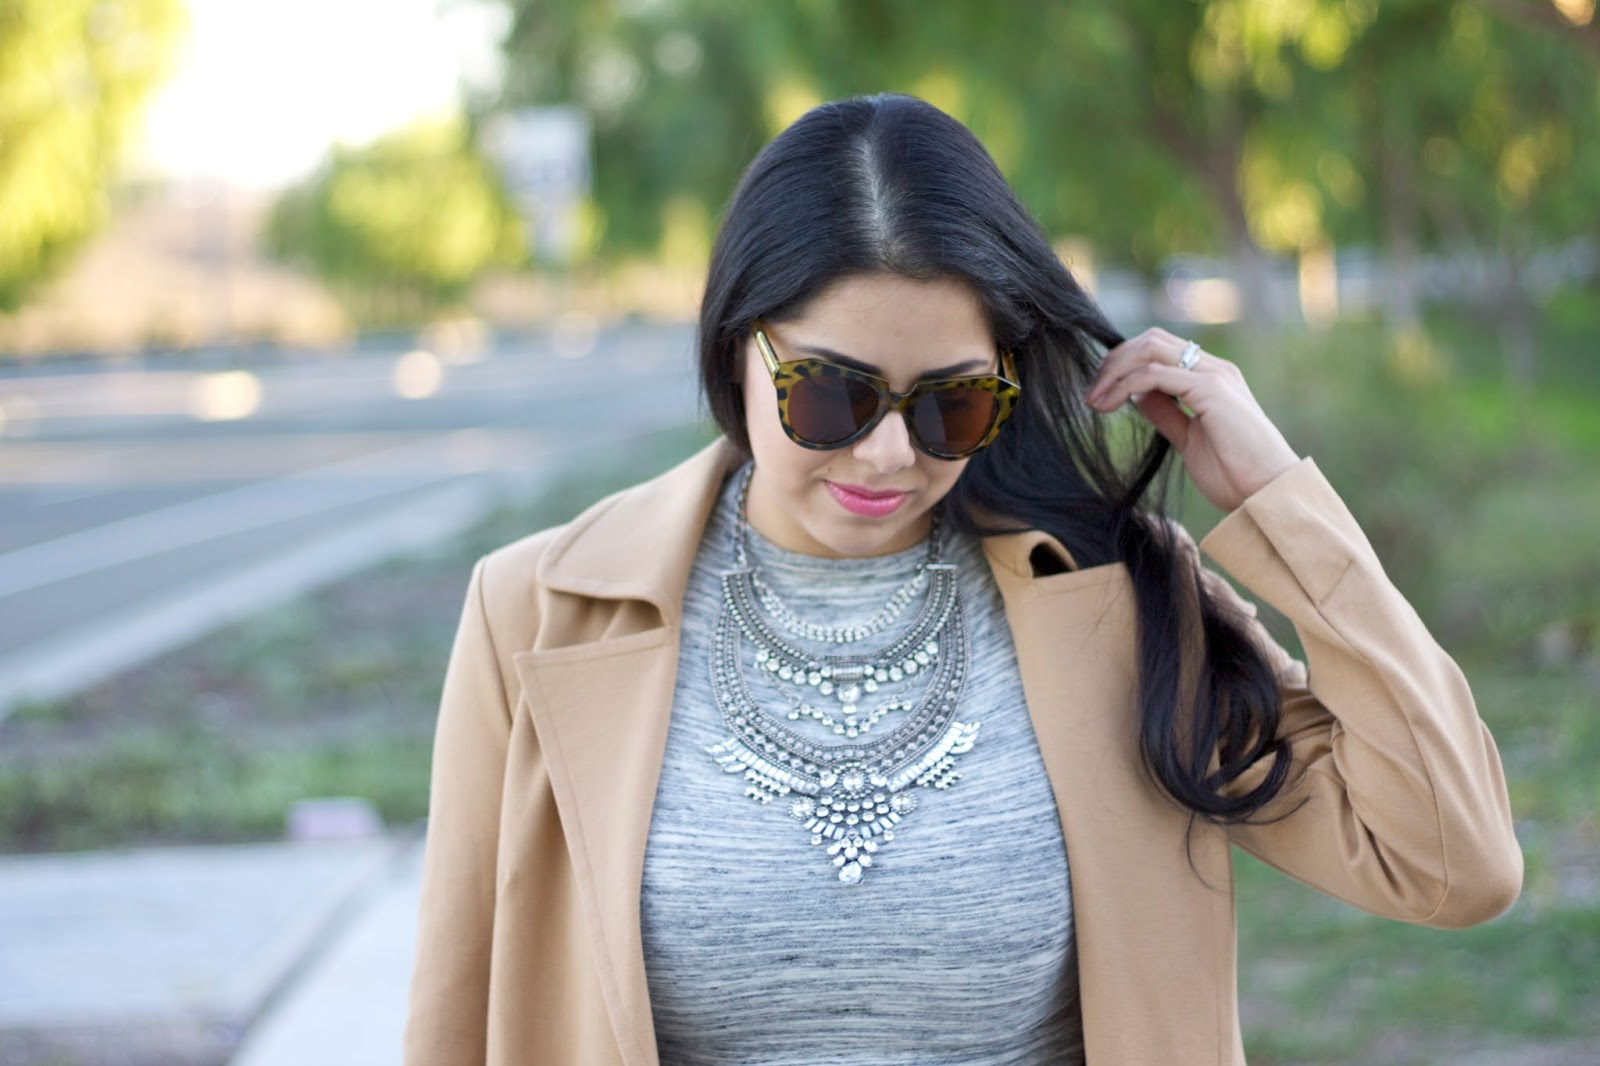 Latina fashion blogger, over the top statement necklace, grayscale midi dress, tan coat